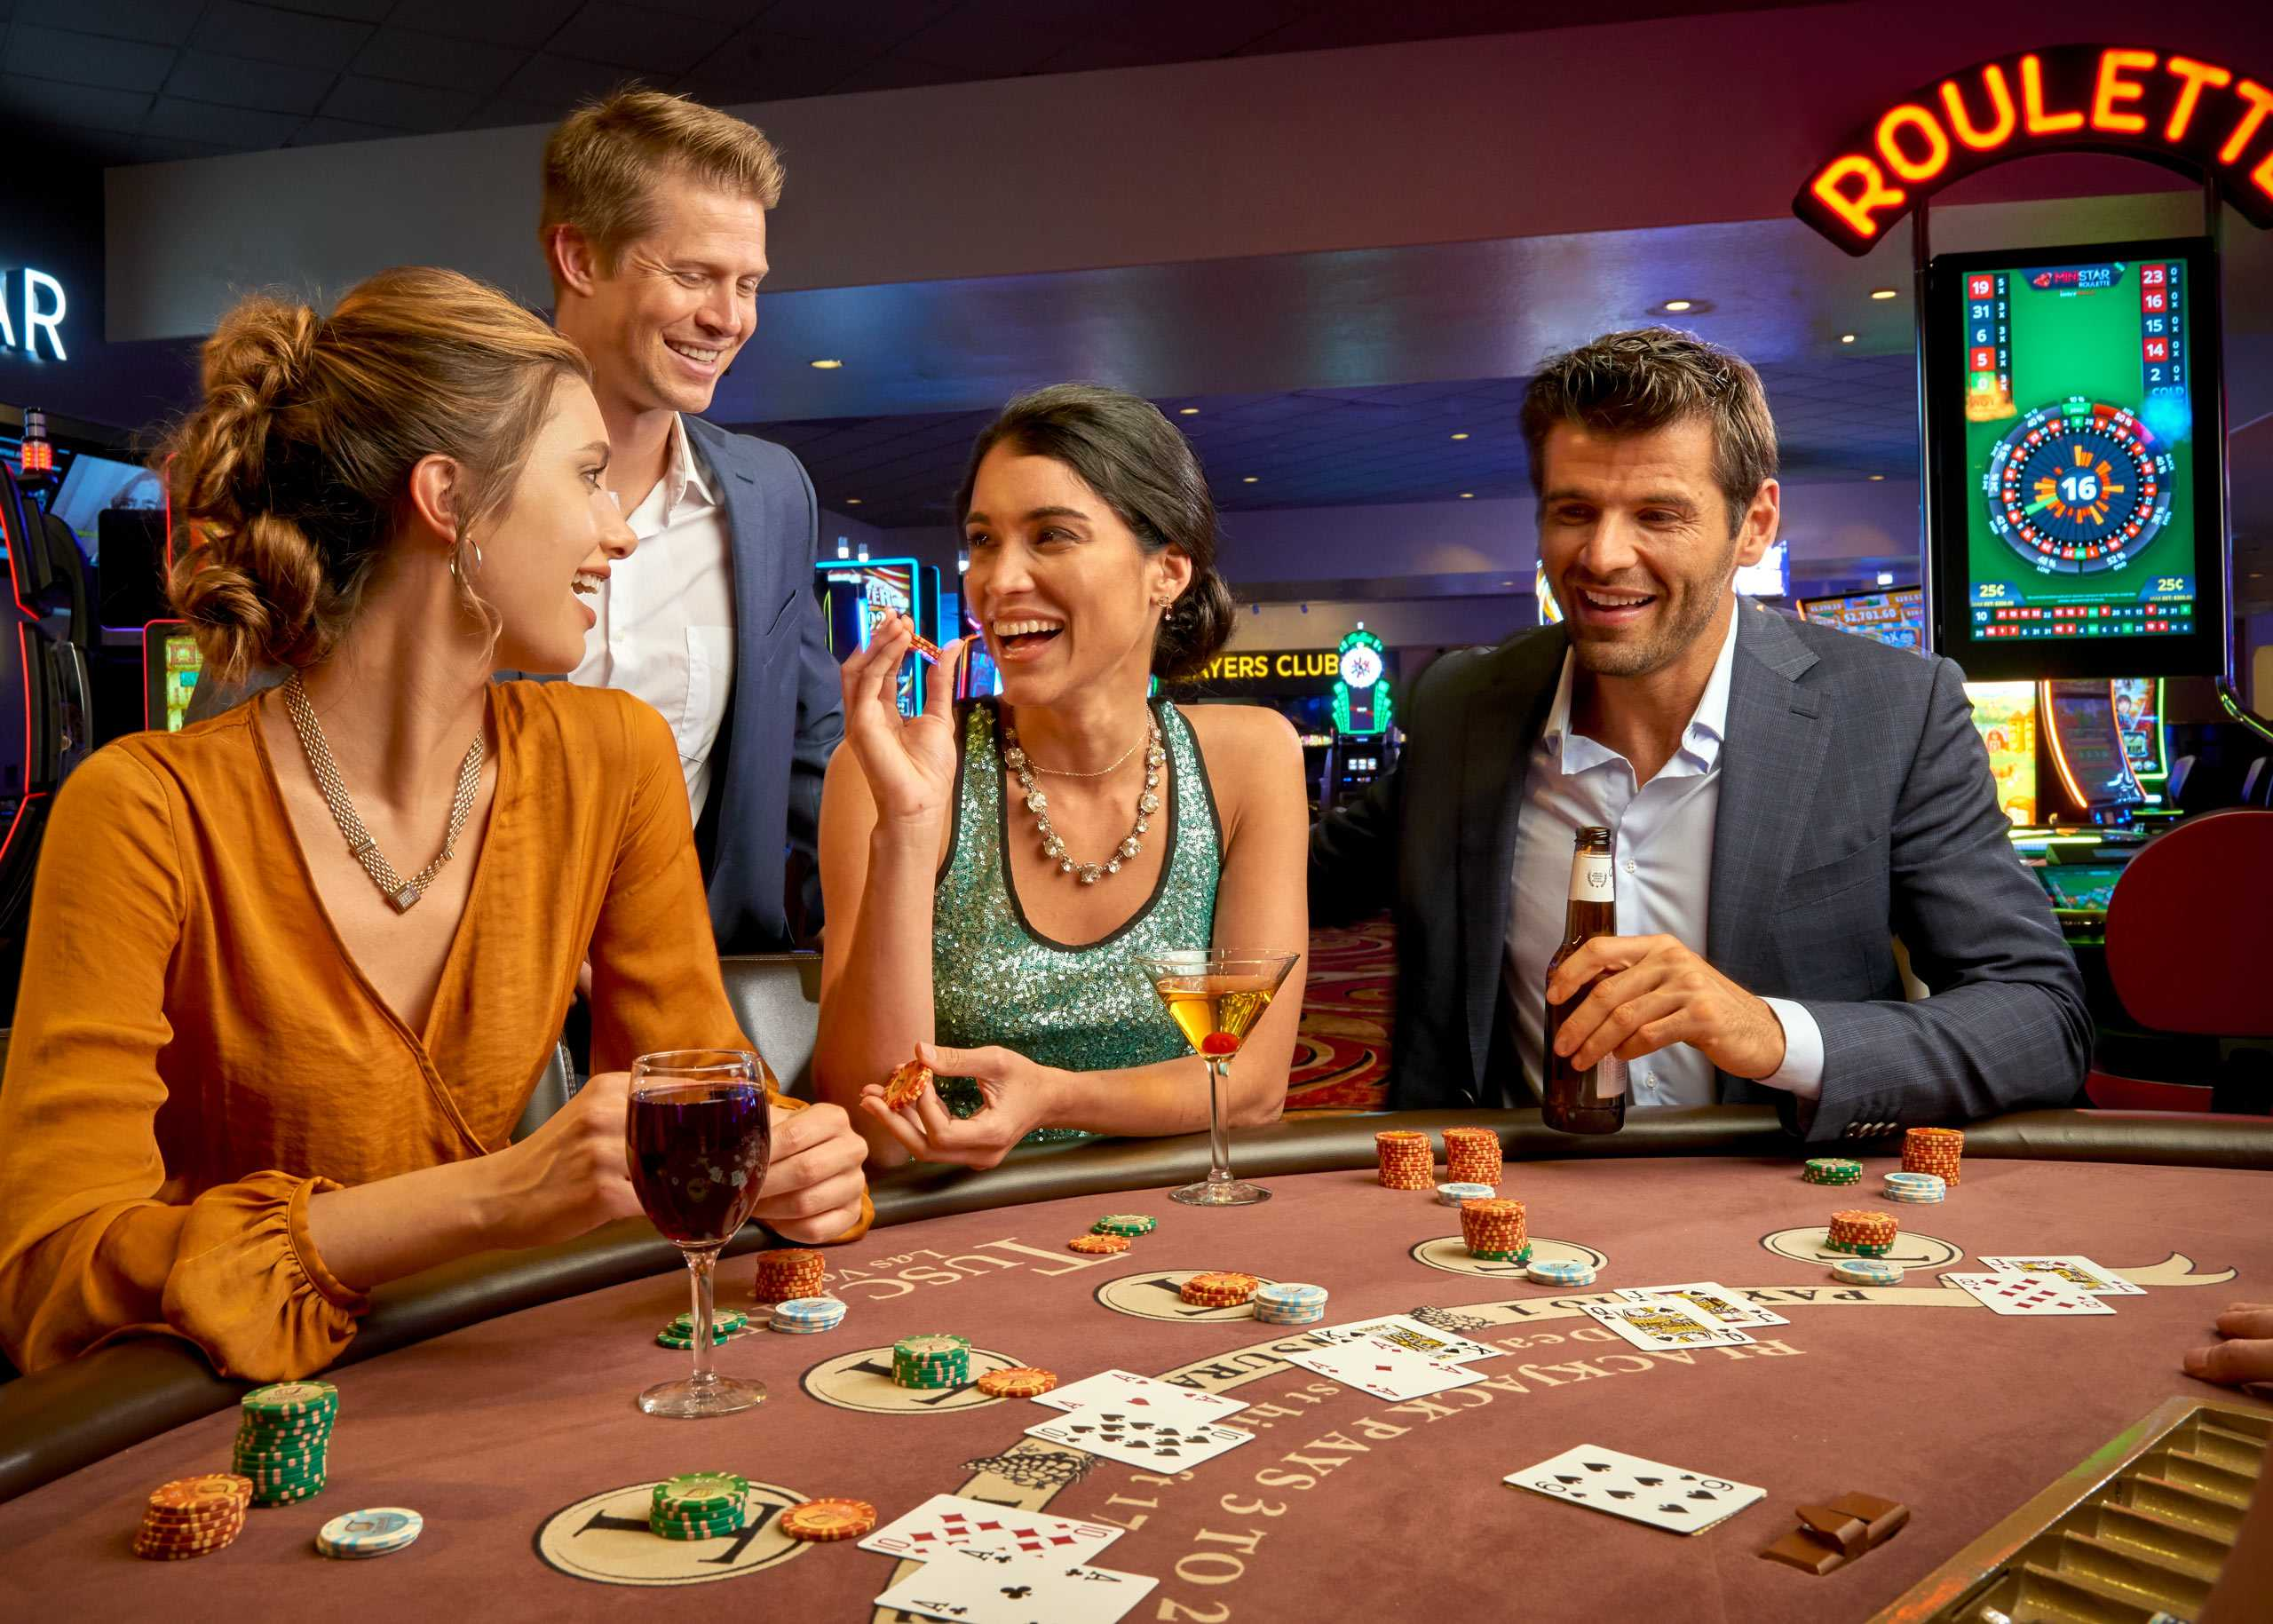 Live Casino Gaming at The Tuscany Suites and Casino in Las Vegas